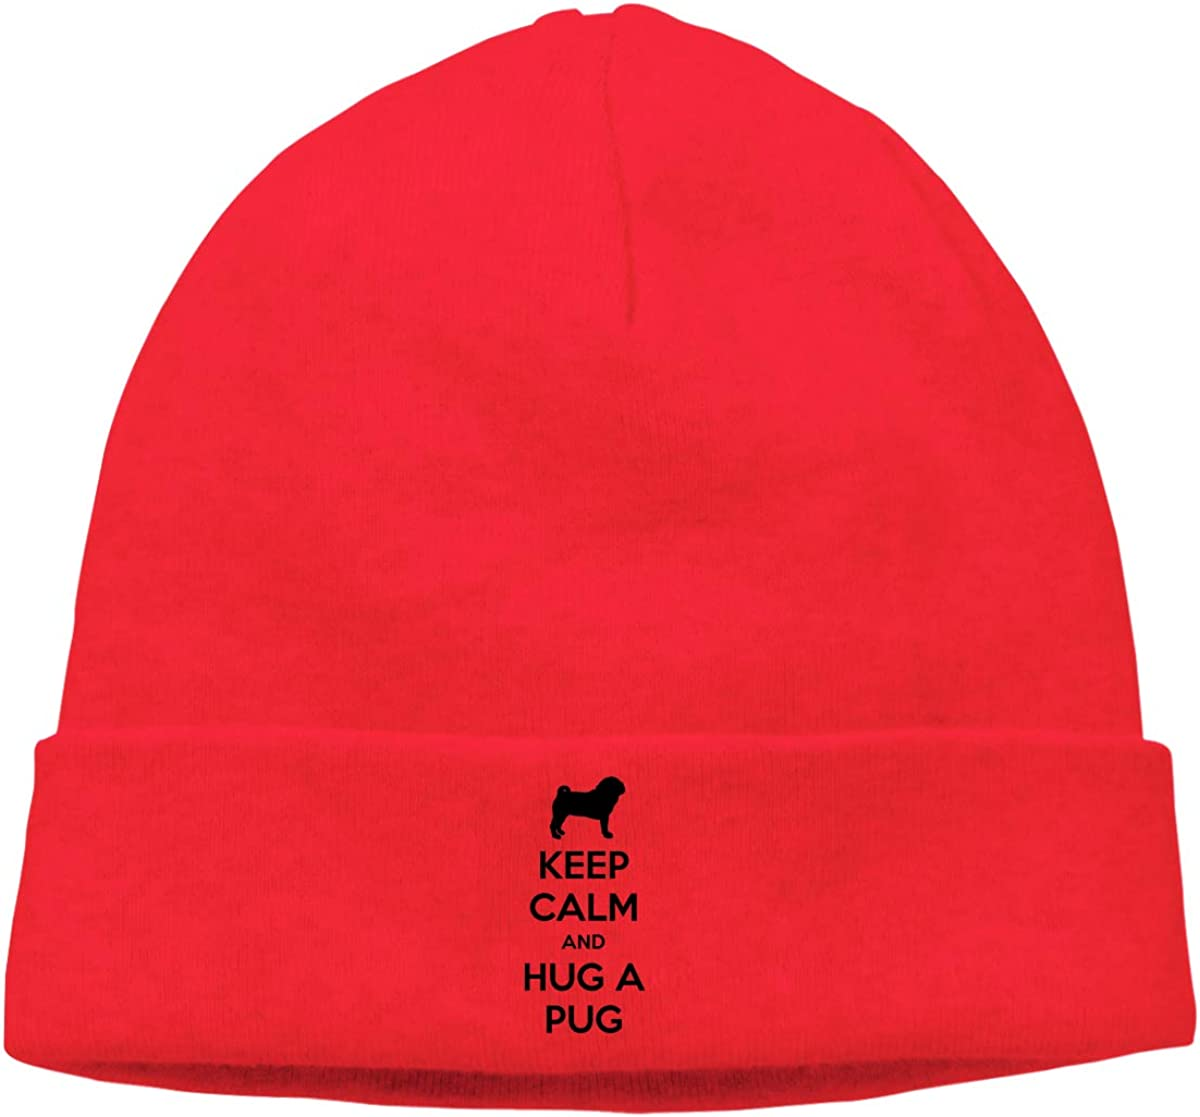 This Pug Needs A Hug Beanie Hat Knit Cap for Mens